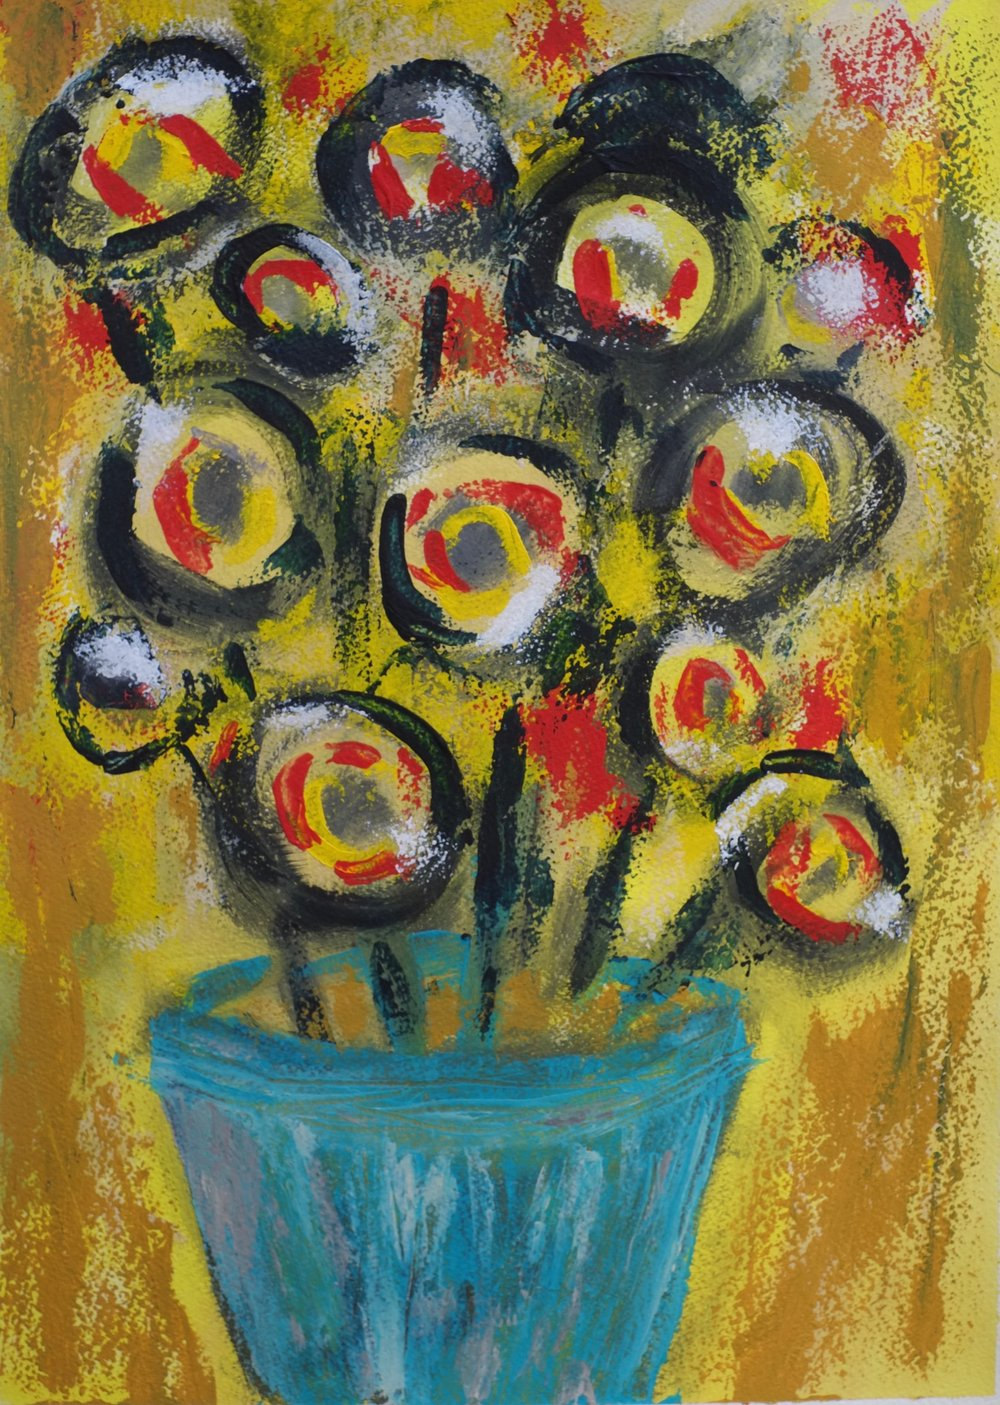 Fleur    Acrylic on Rough Watercolor Paper, 24X18in